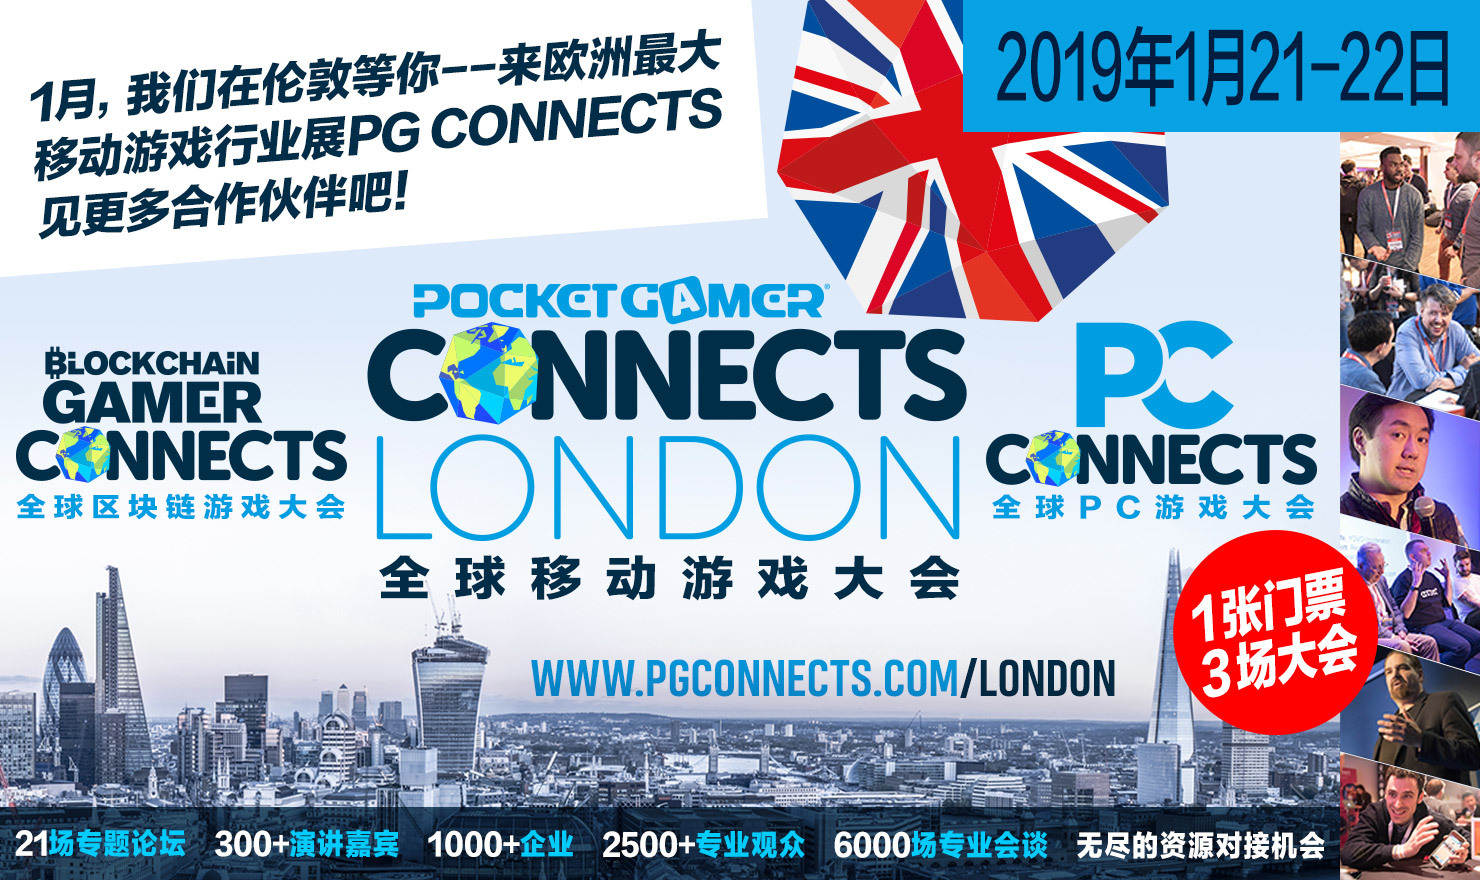 Pocket Gamer Connects London与Blockchain Gamer、PC Connects联袂呈现三合一盛会